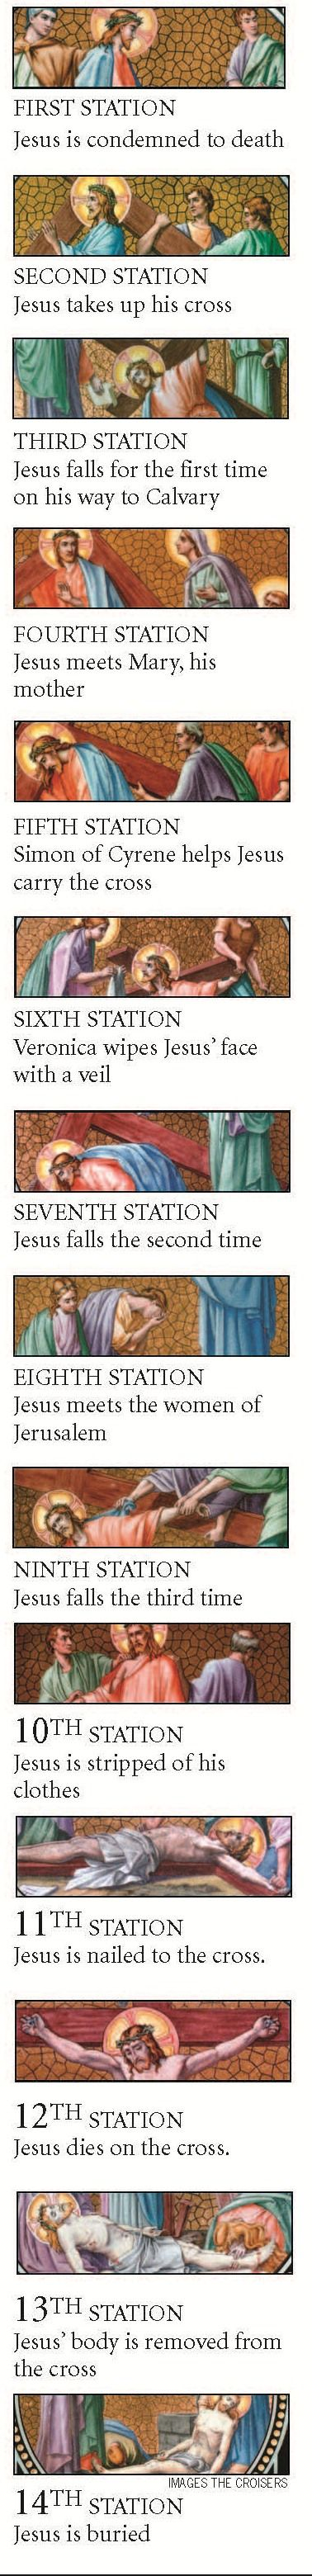 catholic station of the cross prayer guide